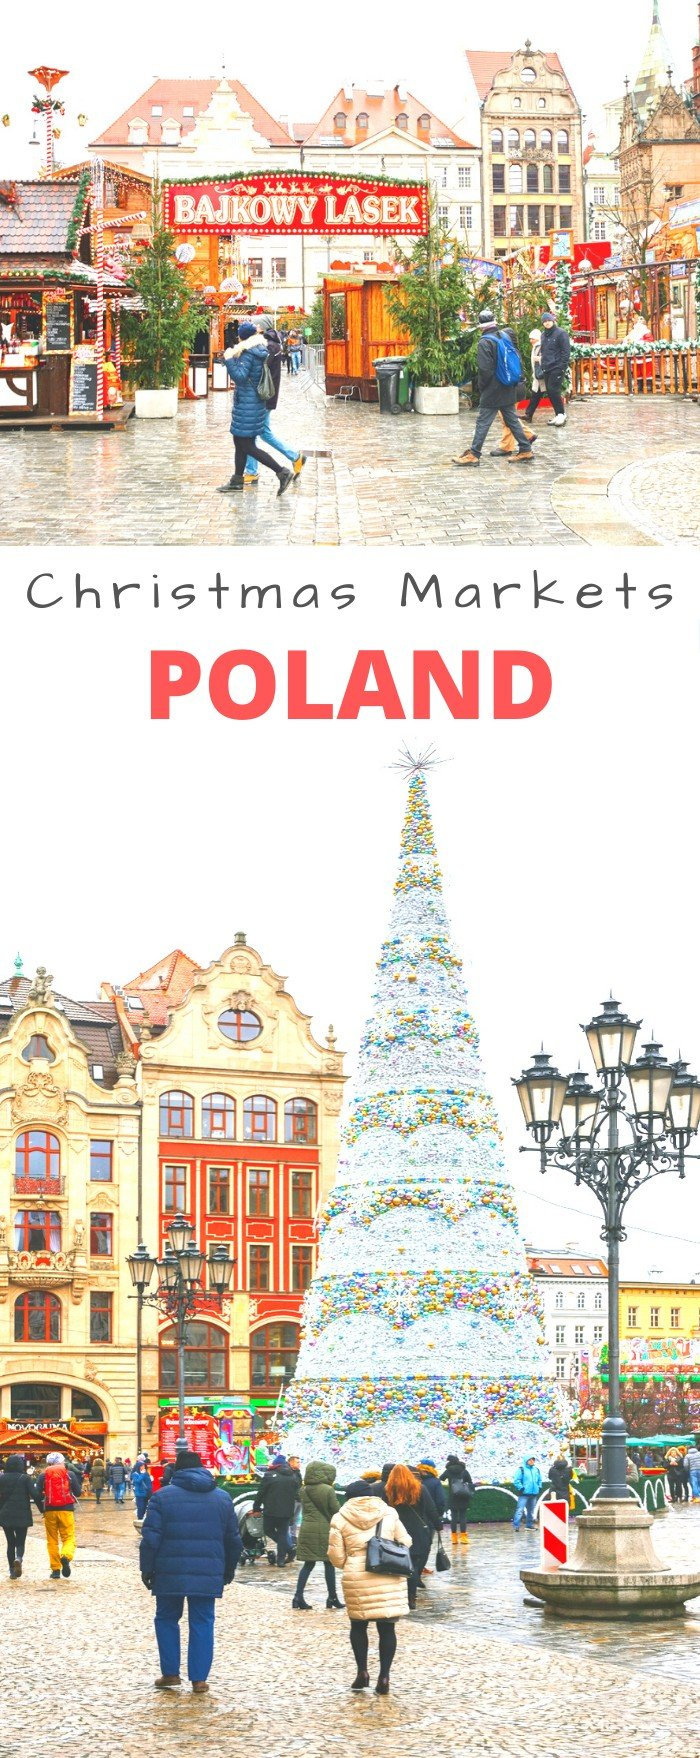 Most of us think of Austria or Germany when we think about traditional Christmas markets, but just across the border in Poland, you can find many equally beautiful and less crowded markets. So why not come to Poland and try the special Christmas food and drinks, and unique handicrafts on offer? #Poland #ChristmasMarkets #Krakow #Wroclaw #Poznan #Gdansk #Travel #Holidays #WinterTravel